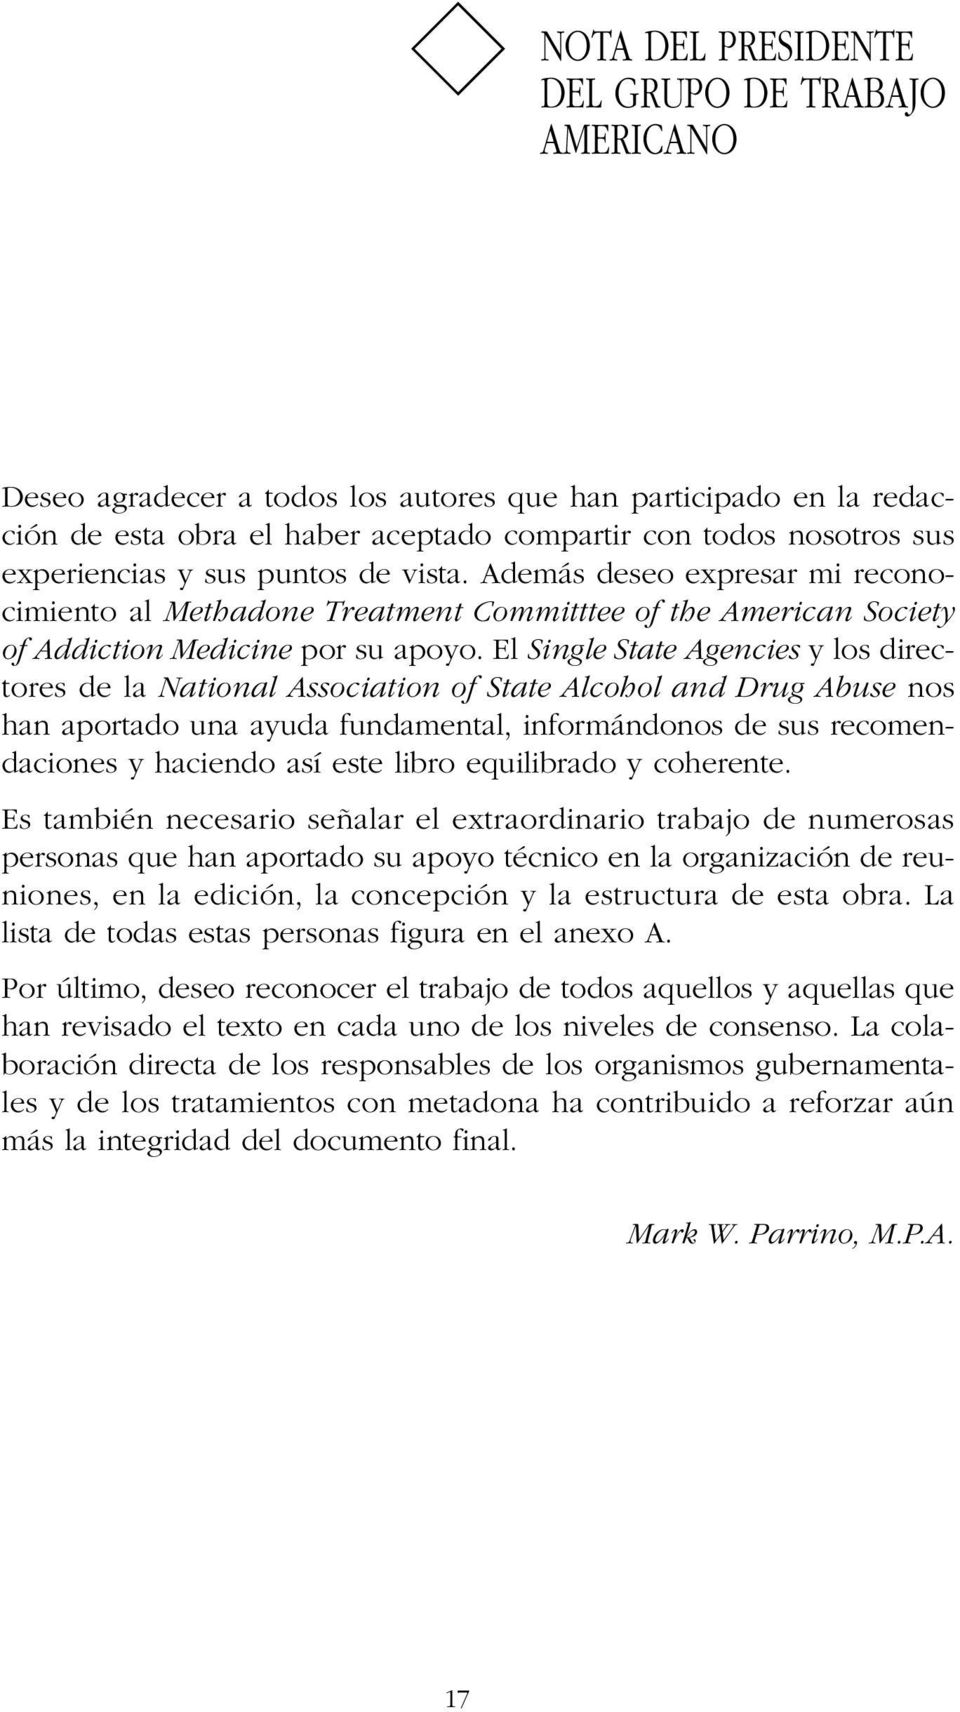 El Single State Agencies y los directores de la National Association of State Alcohol and Drug Abuse nos han aportado una ayuda fundamental, informándonos de sus recomendaciones y haciendo así este